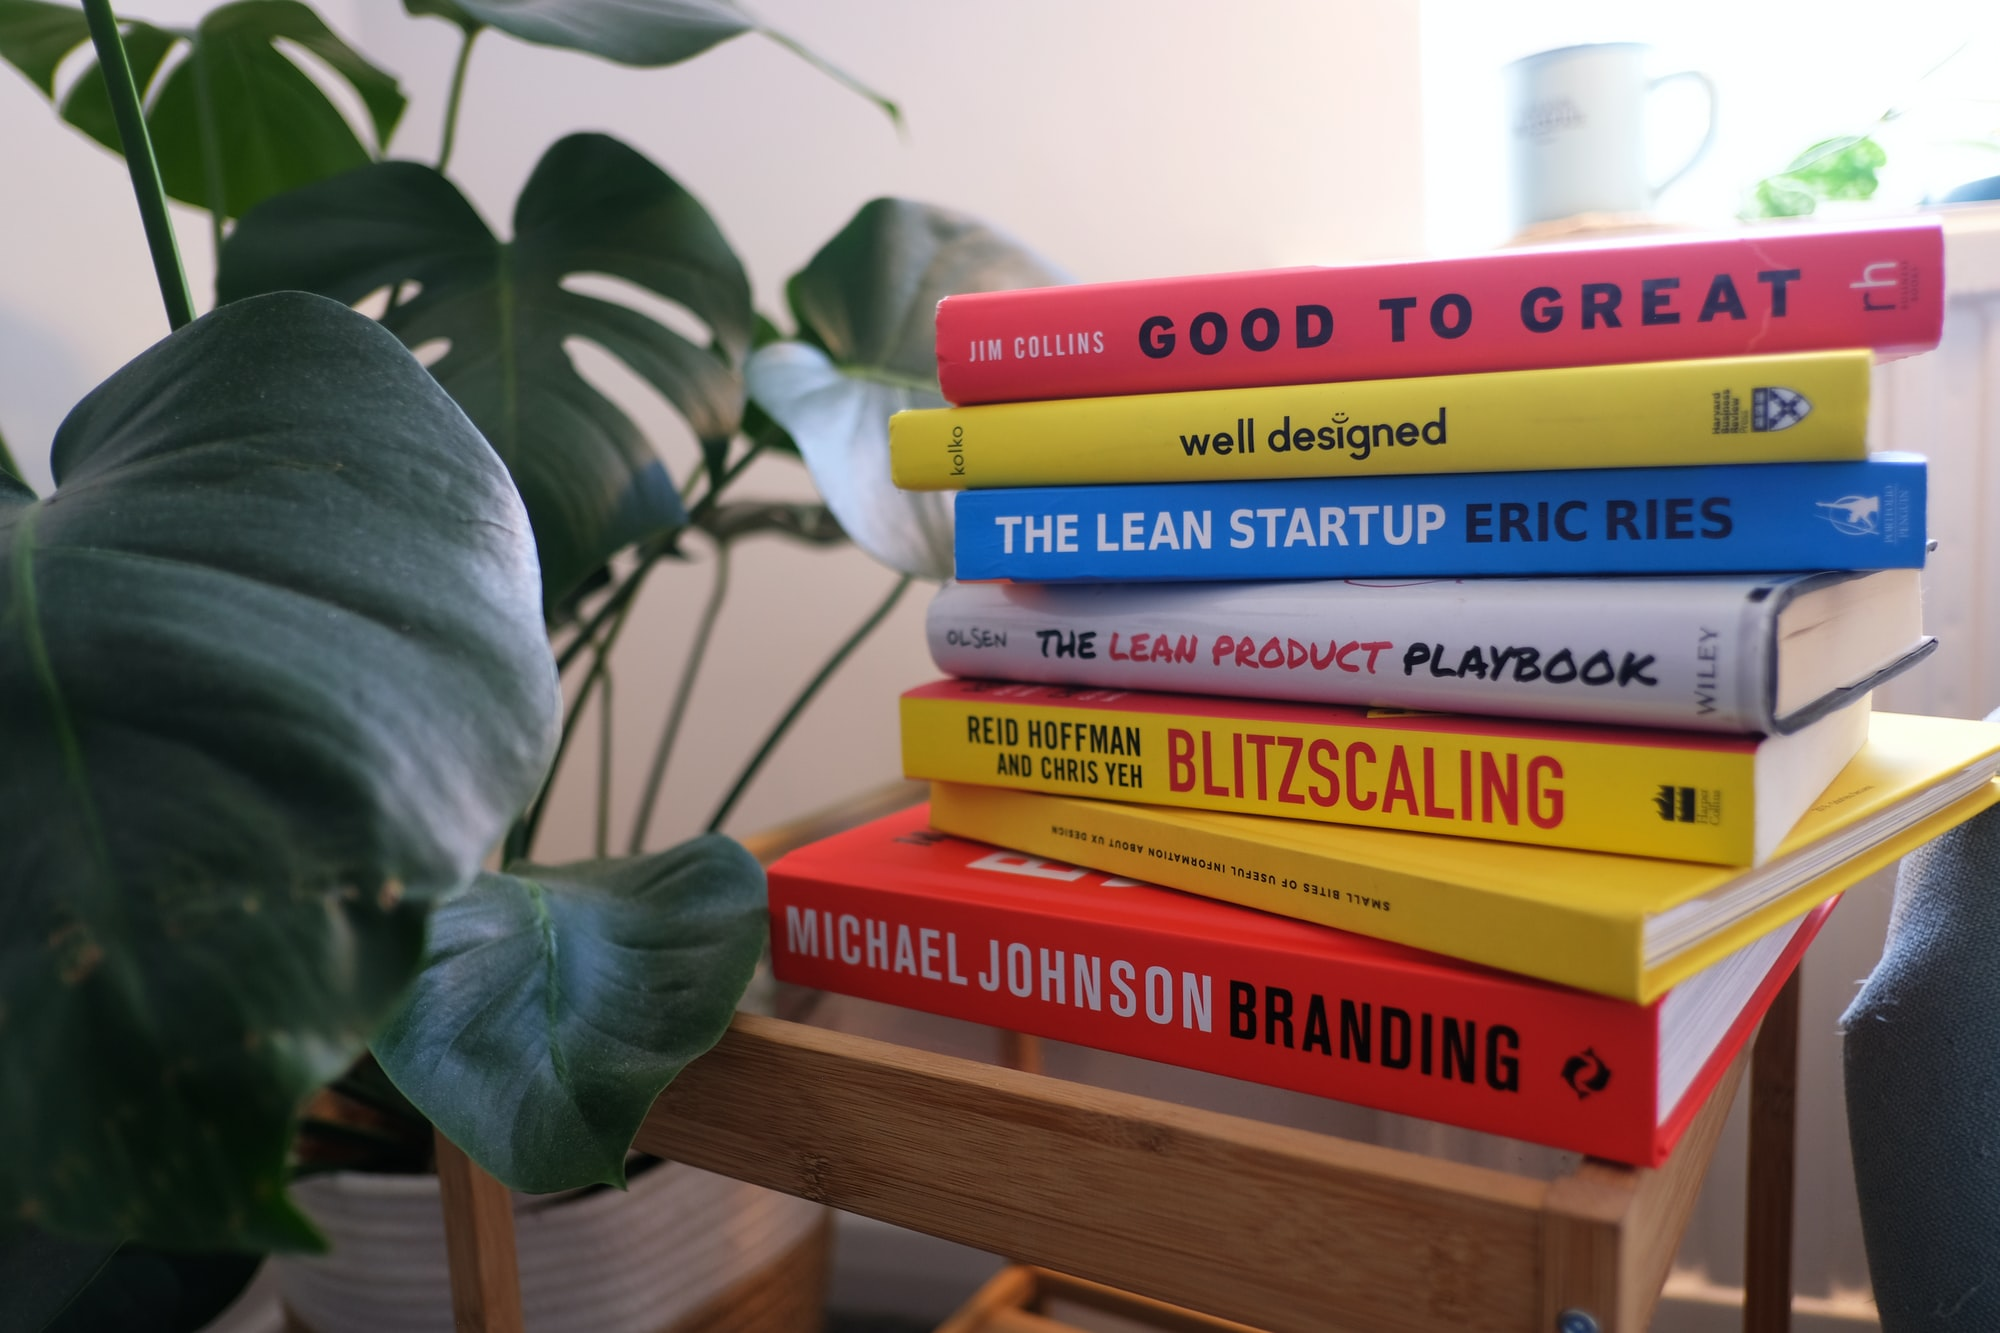 Collection of product management and design books with gorgeous monstera plant.